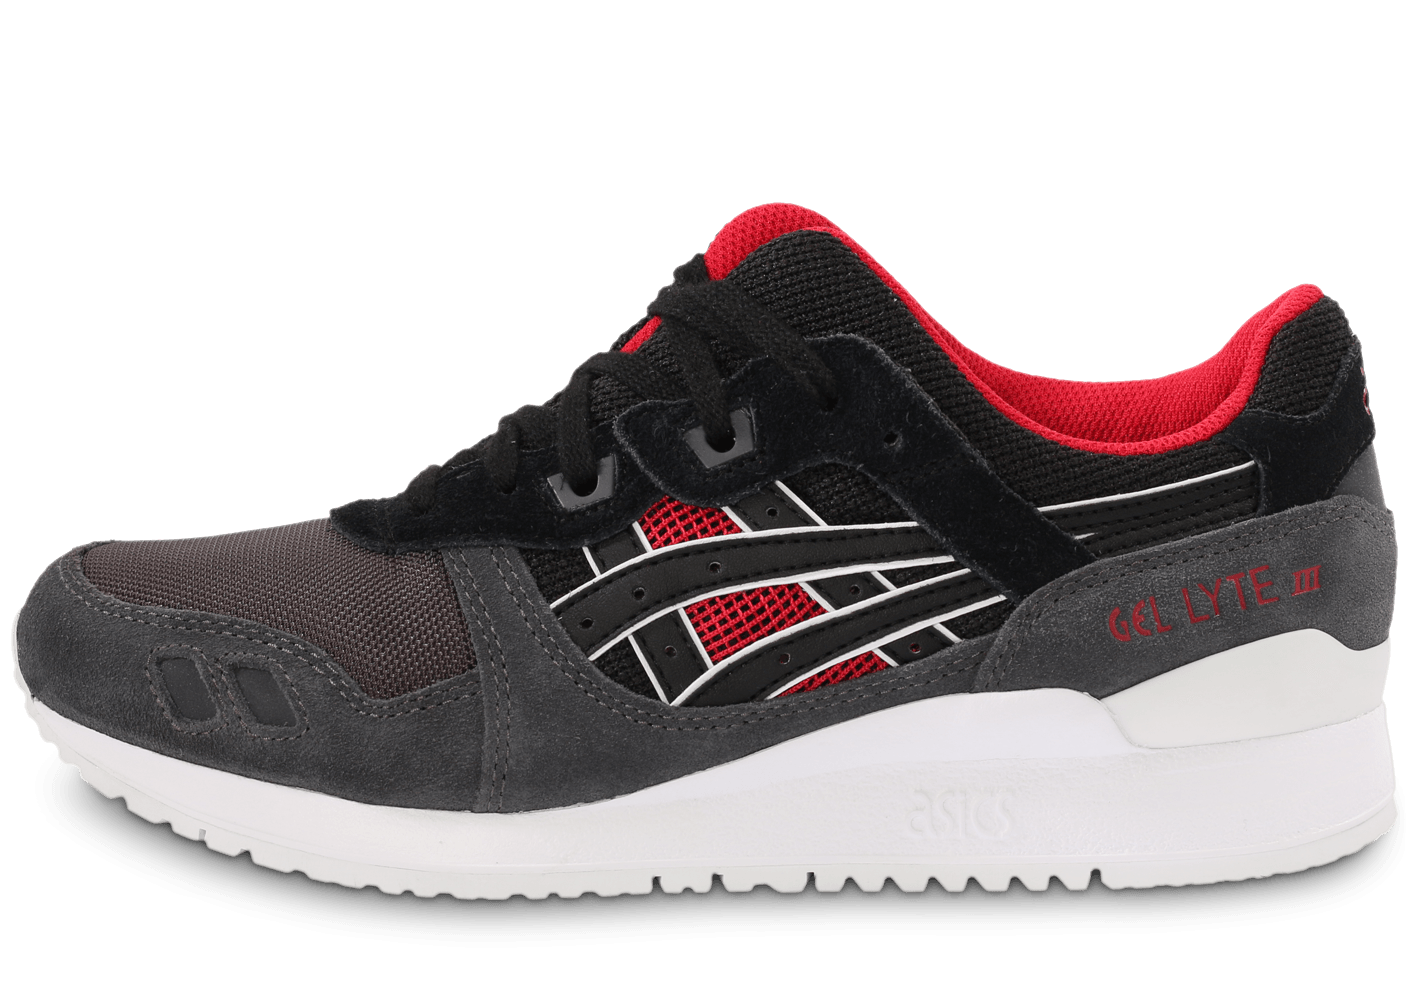 asics gel lyte iii chaussures coloris noir rouge beige. Black Bedroom Furniture Sets. Home Design Ideas